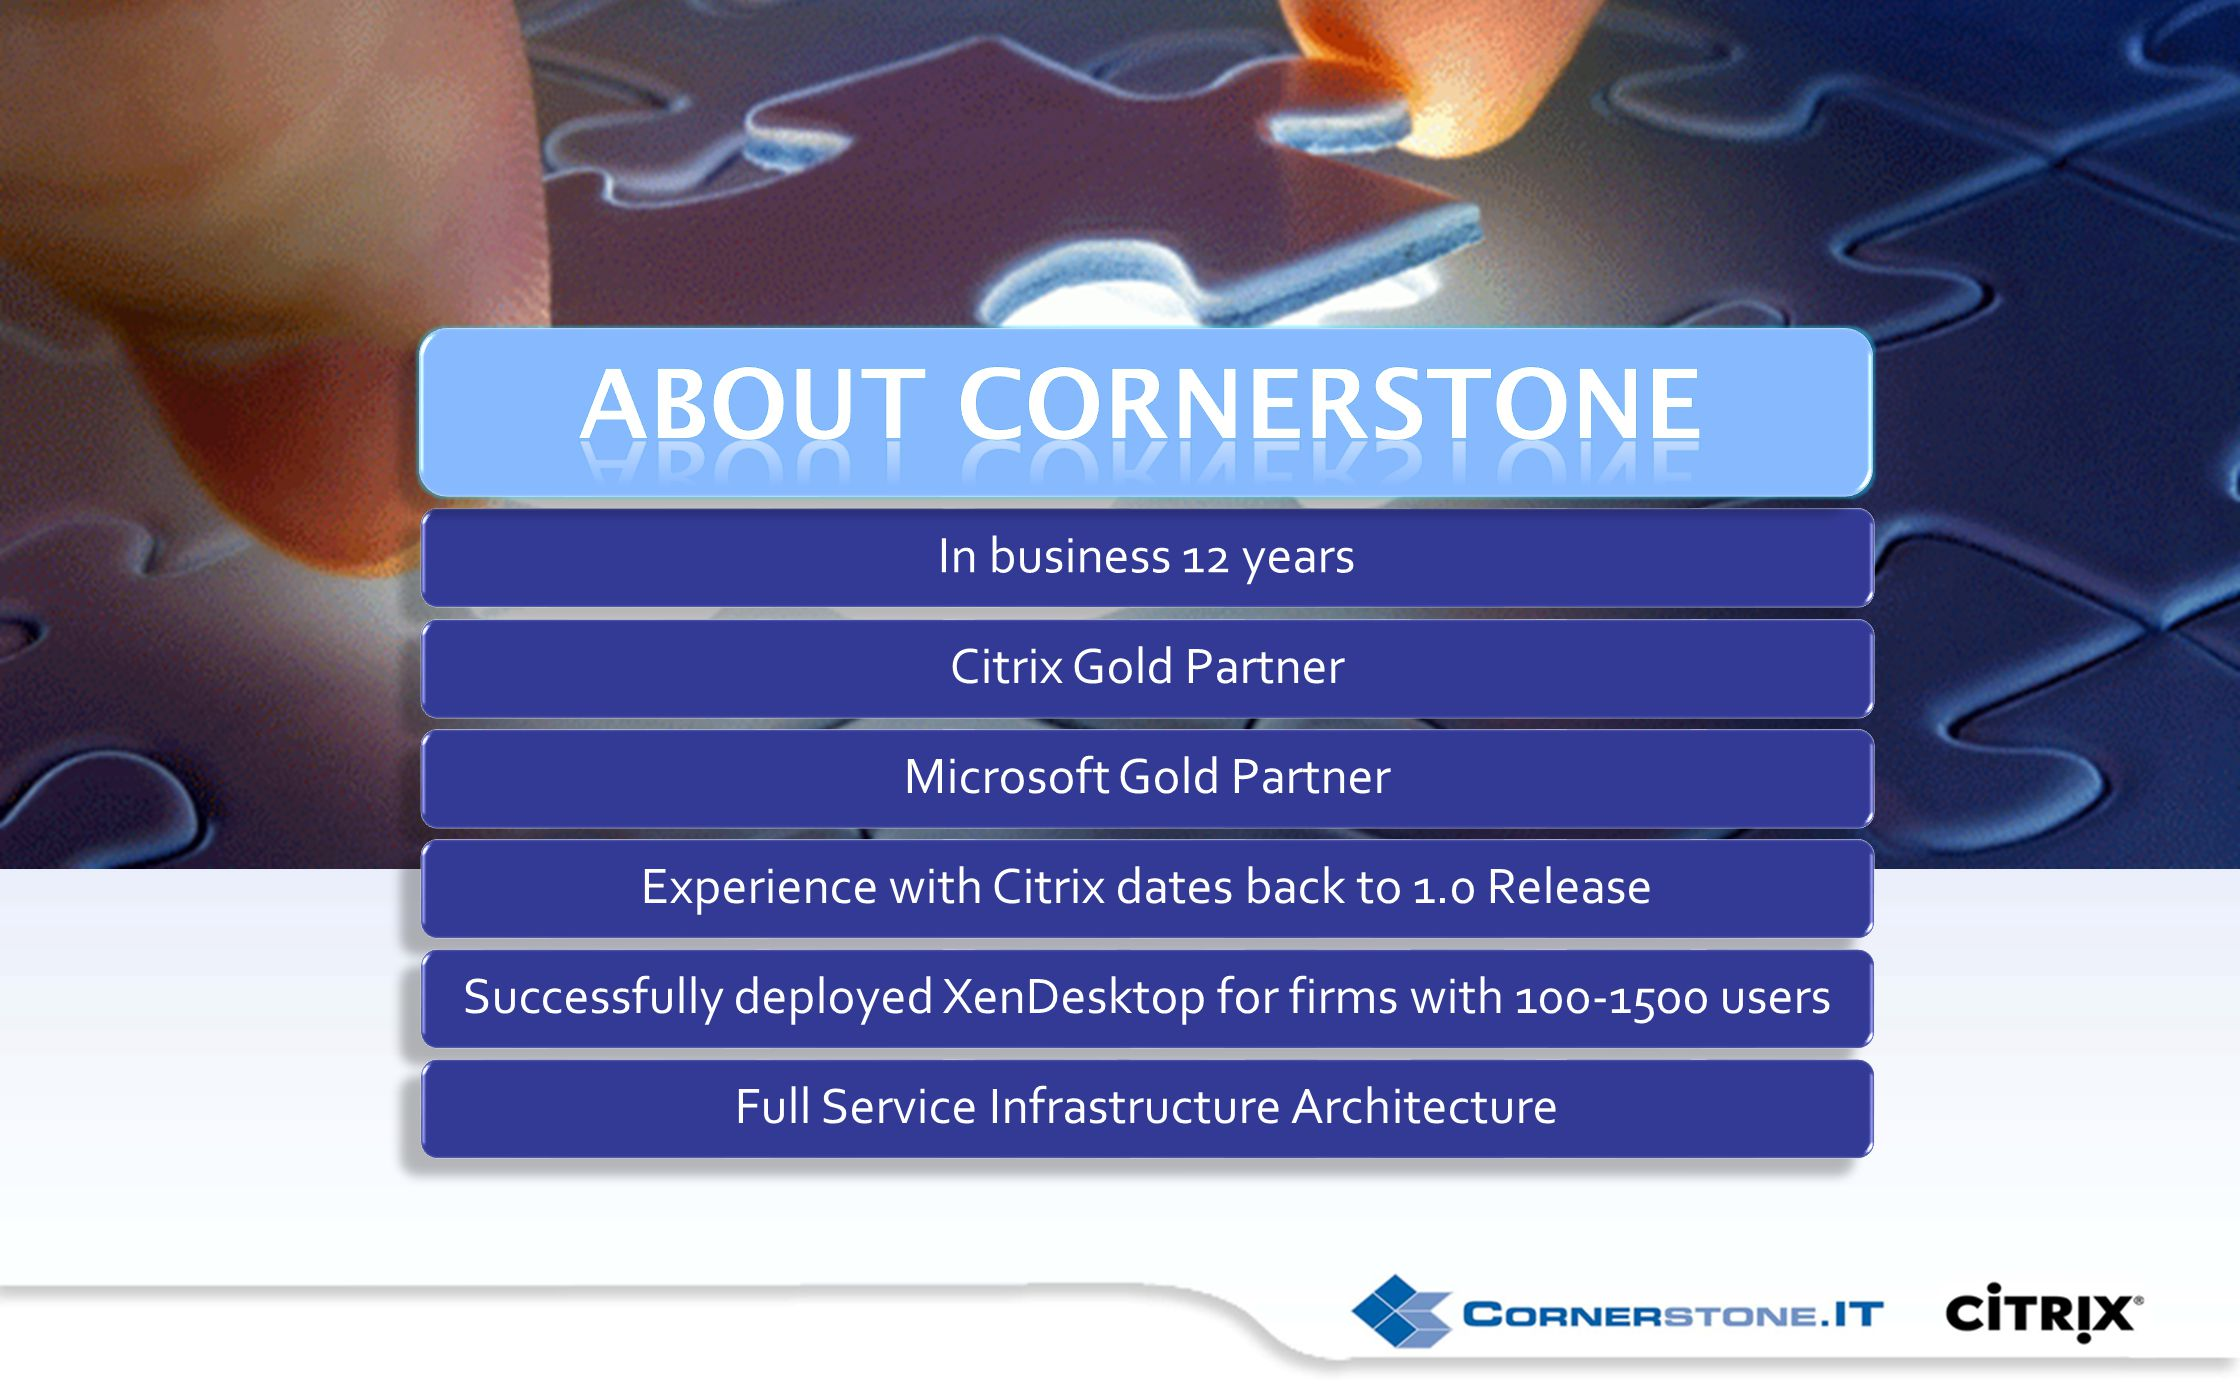 About Cornerstone In business 12 yearsCitrix Gold PartnerMicrosoft Gold PartnerExperience with Citrix dates back to 1.0 ReleaseSuccessfully deployed XenDesktop for firms with 100-1500 usersFull Service Infrastructure Architecture